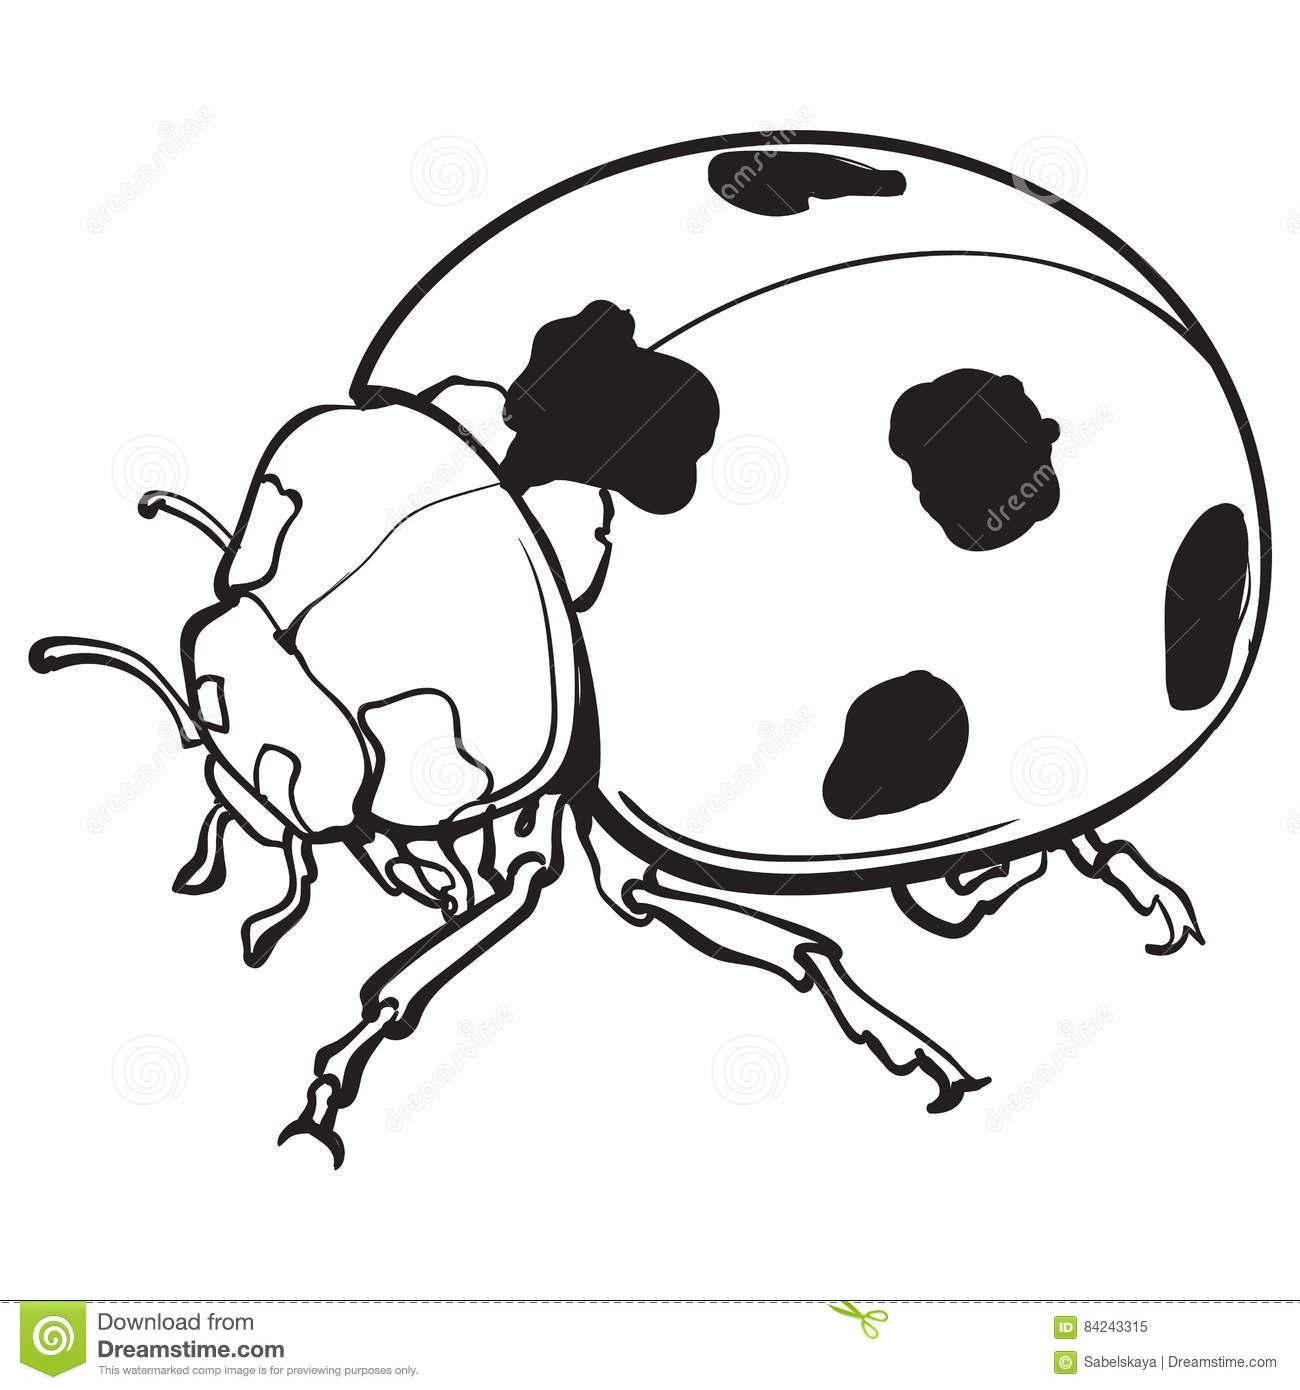 Line Drawing Lady : Red ladybug ladybird with black spots isolated sketch